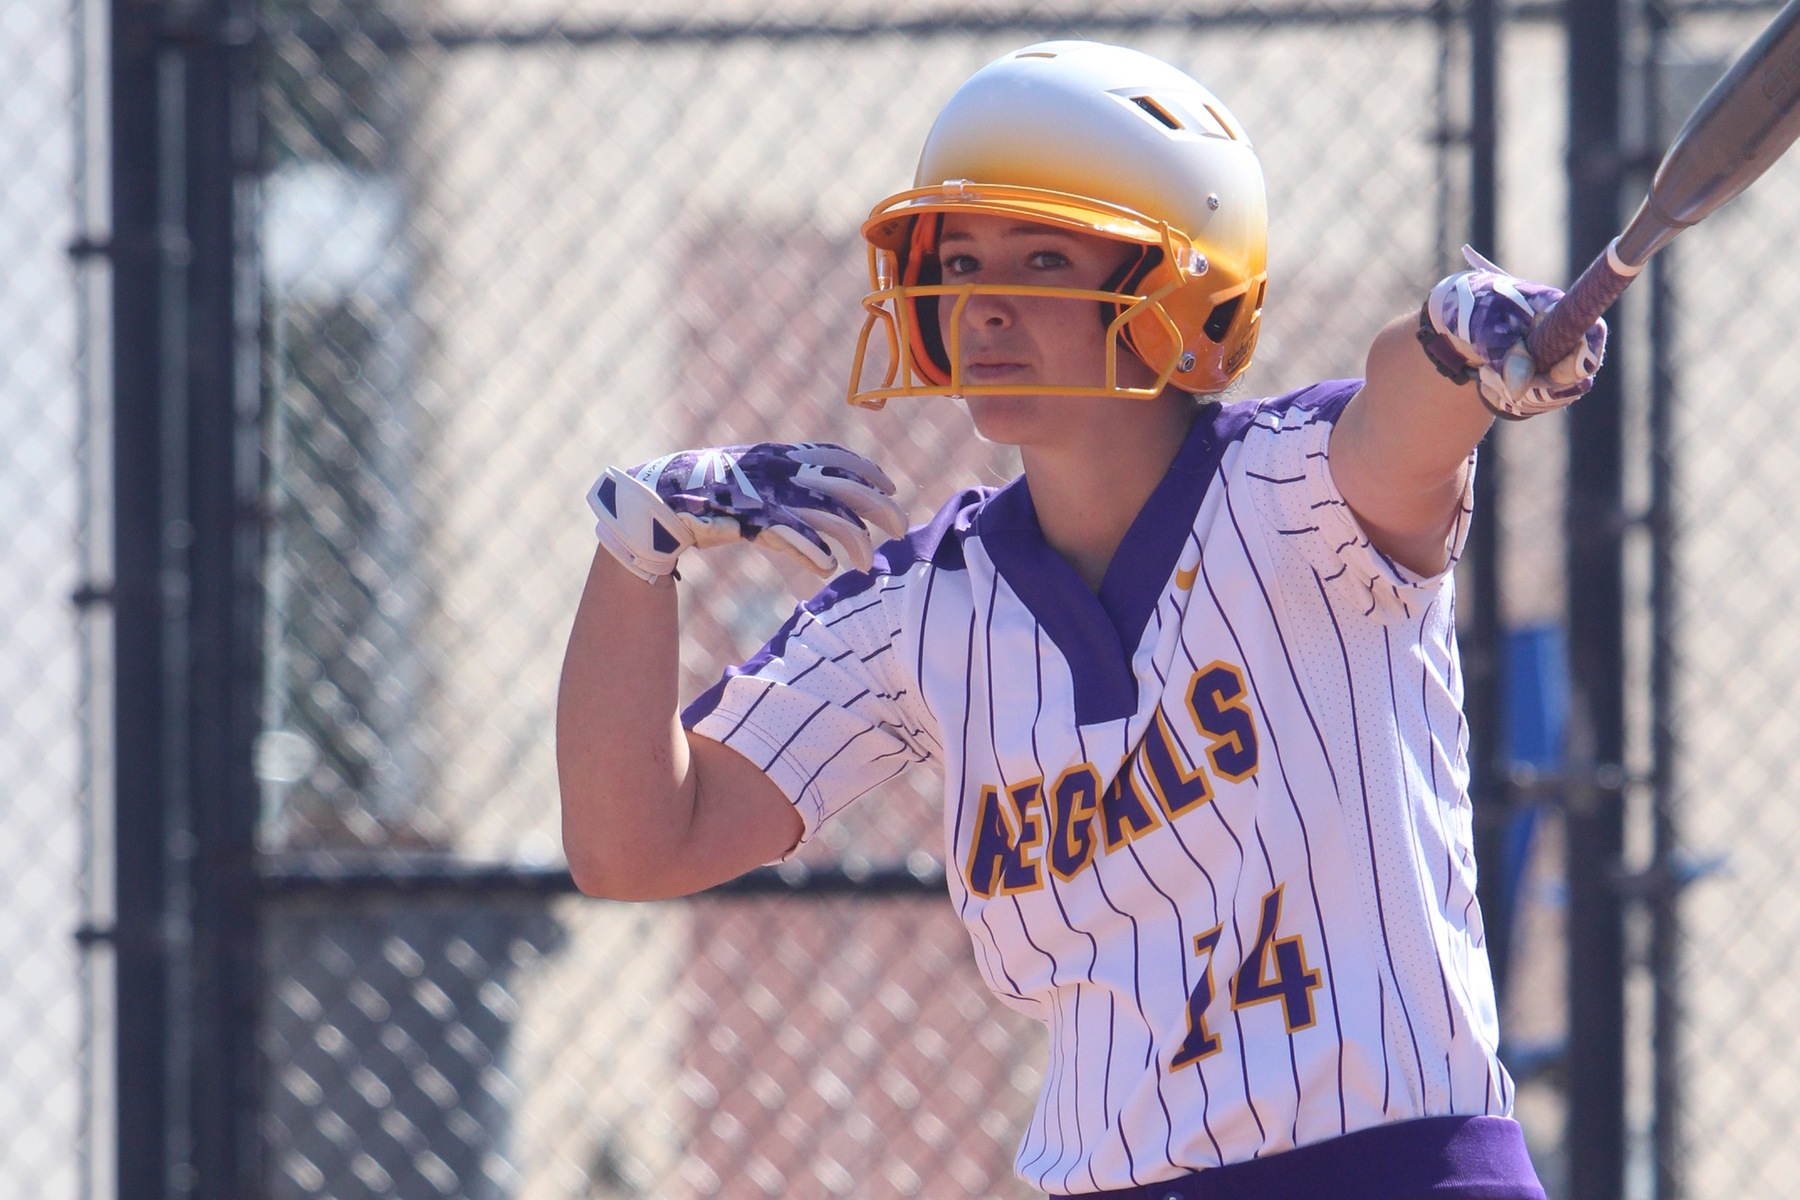 Catherine Slabaugh comes up with a clutch RBI single to CLU a 7-6 win against Whittier. (Photo: Danielle Roumbos)